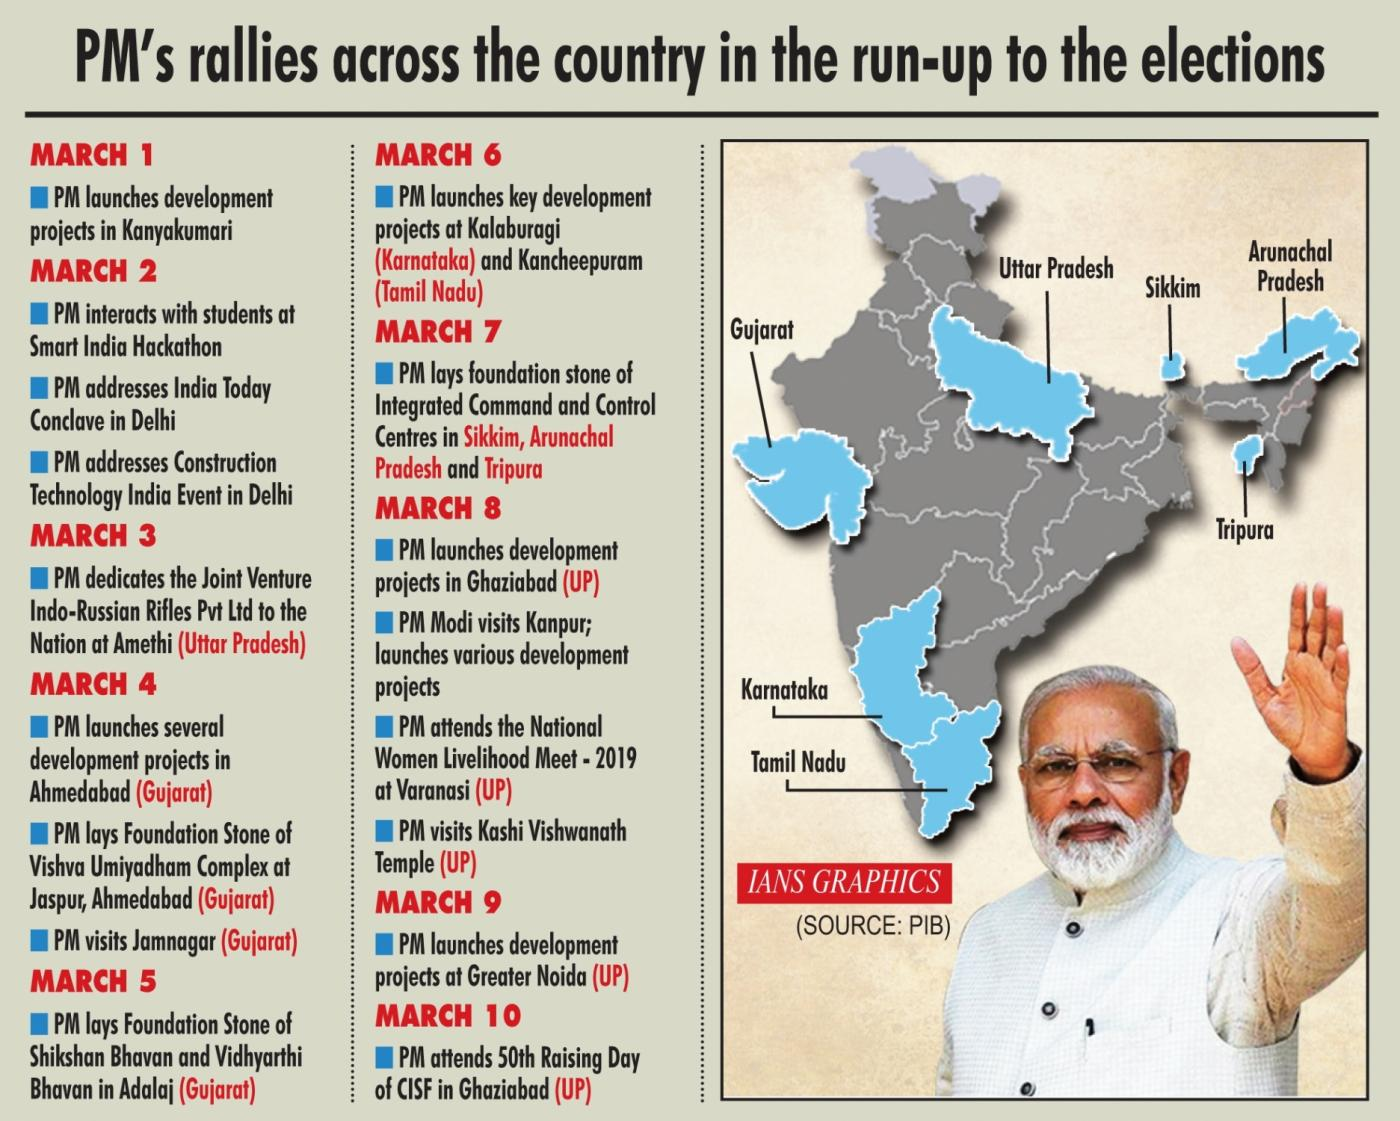 Prime Minister Narendra Modi's rallies across the country in the run-up to the elections. (IANS Infographics) by .